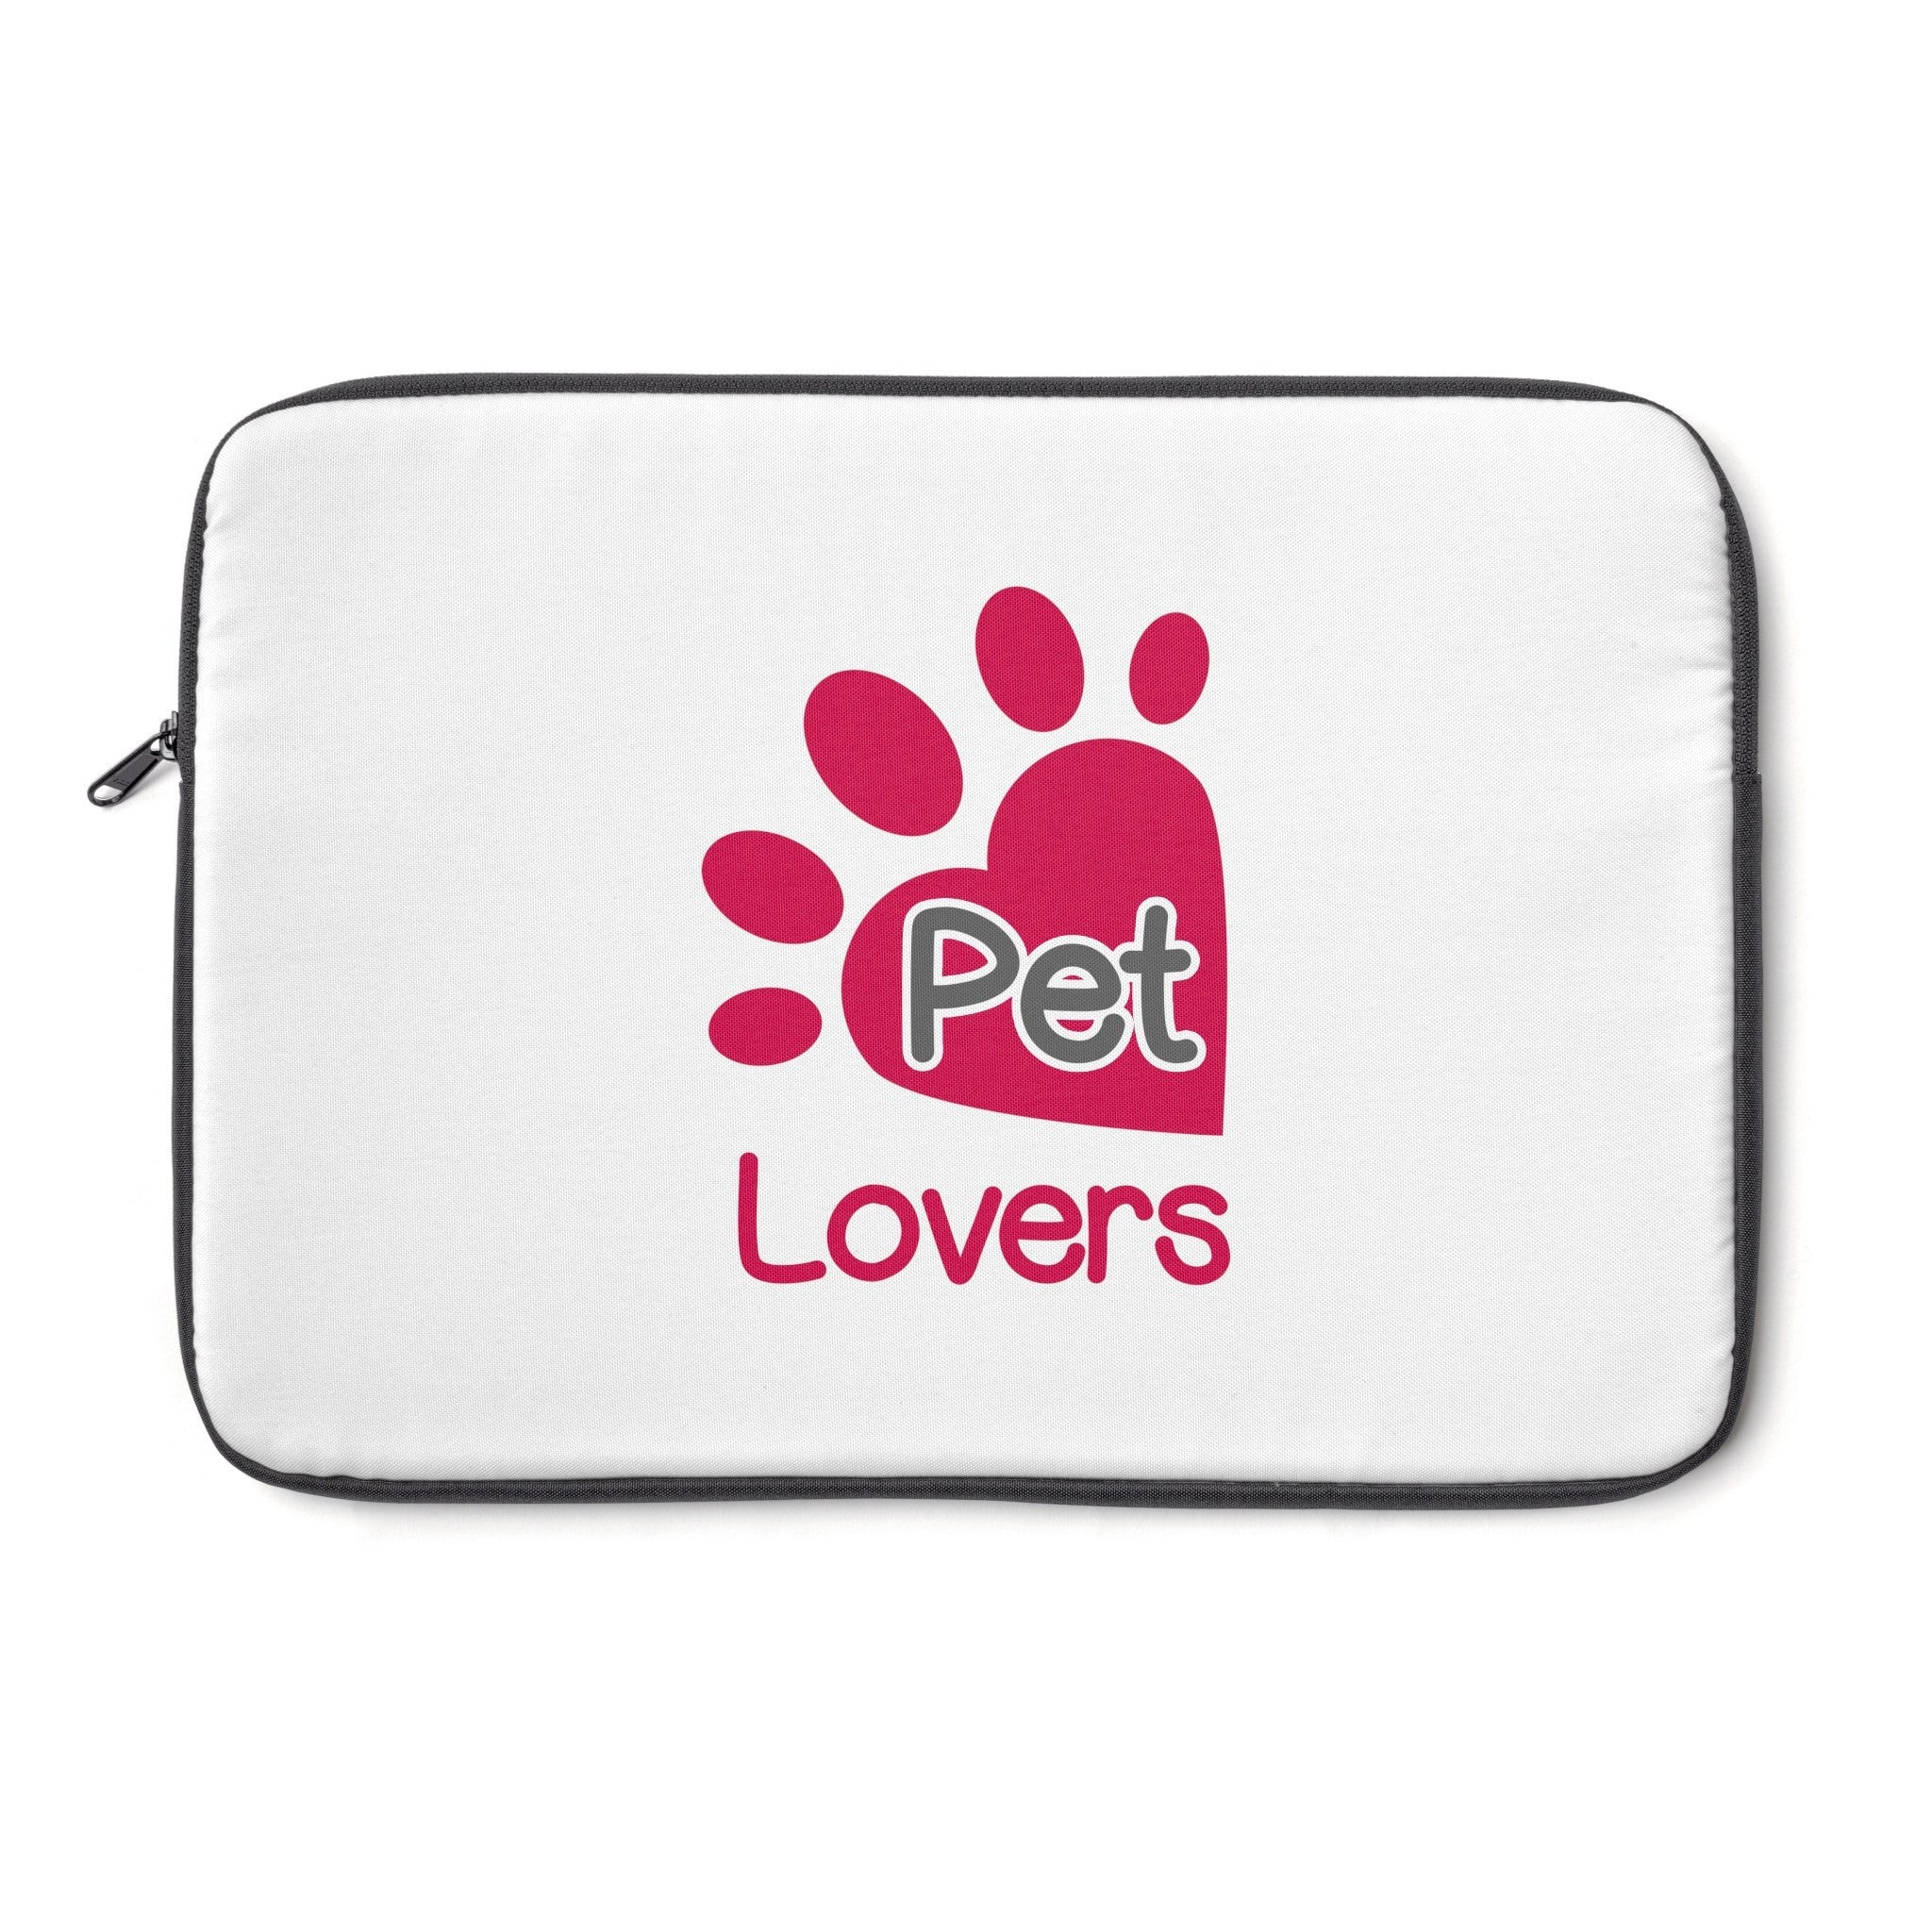 PetLovers - Laptop Sleeve